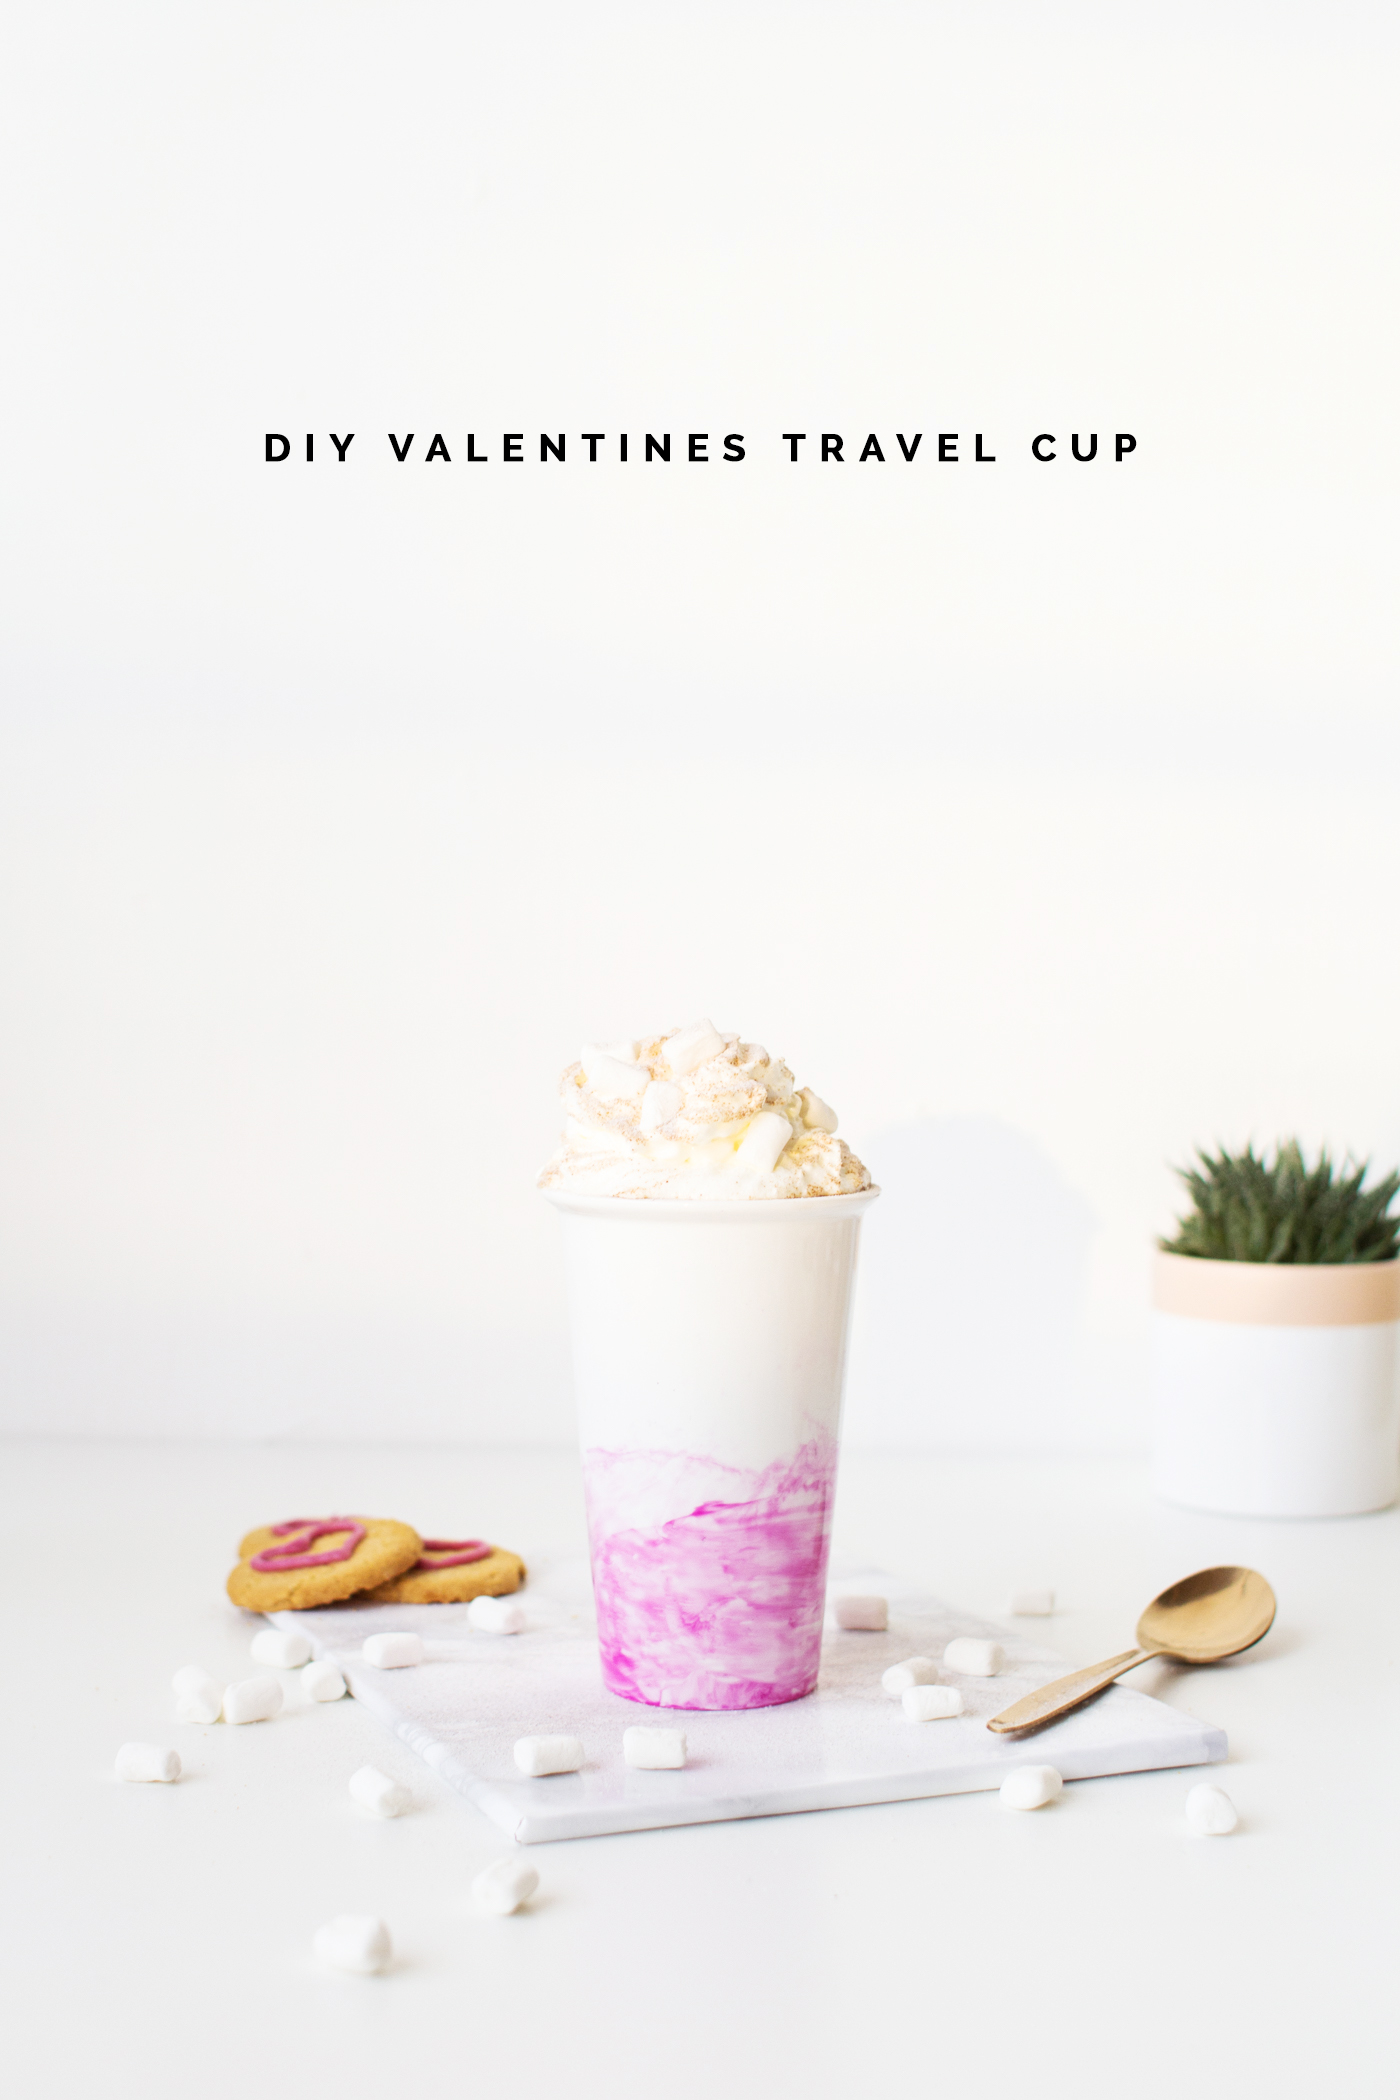 DIY Watercolour Valentines Travel Cup | @fallfordiy